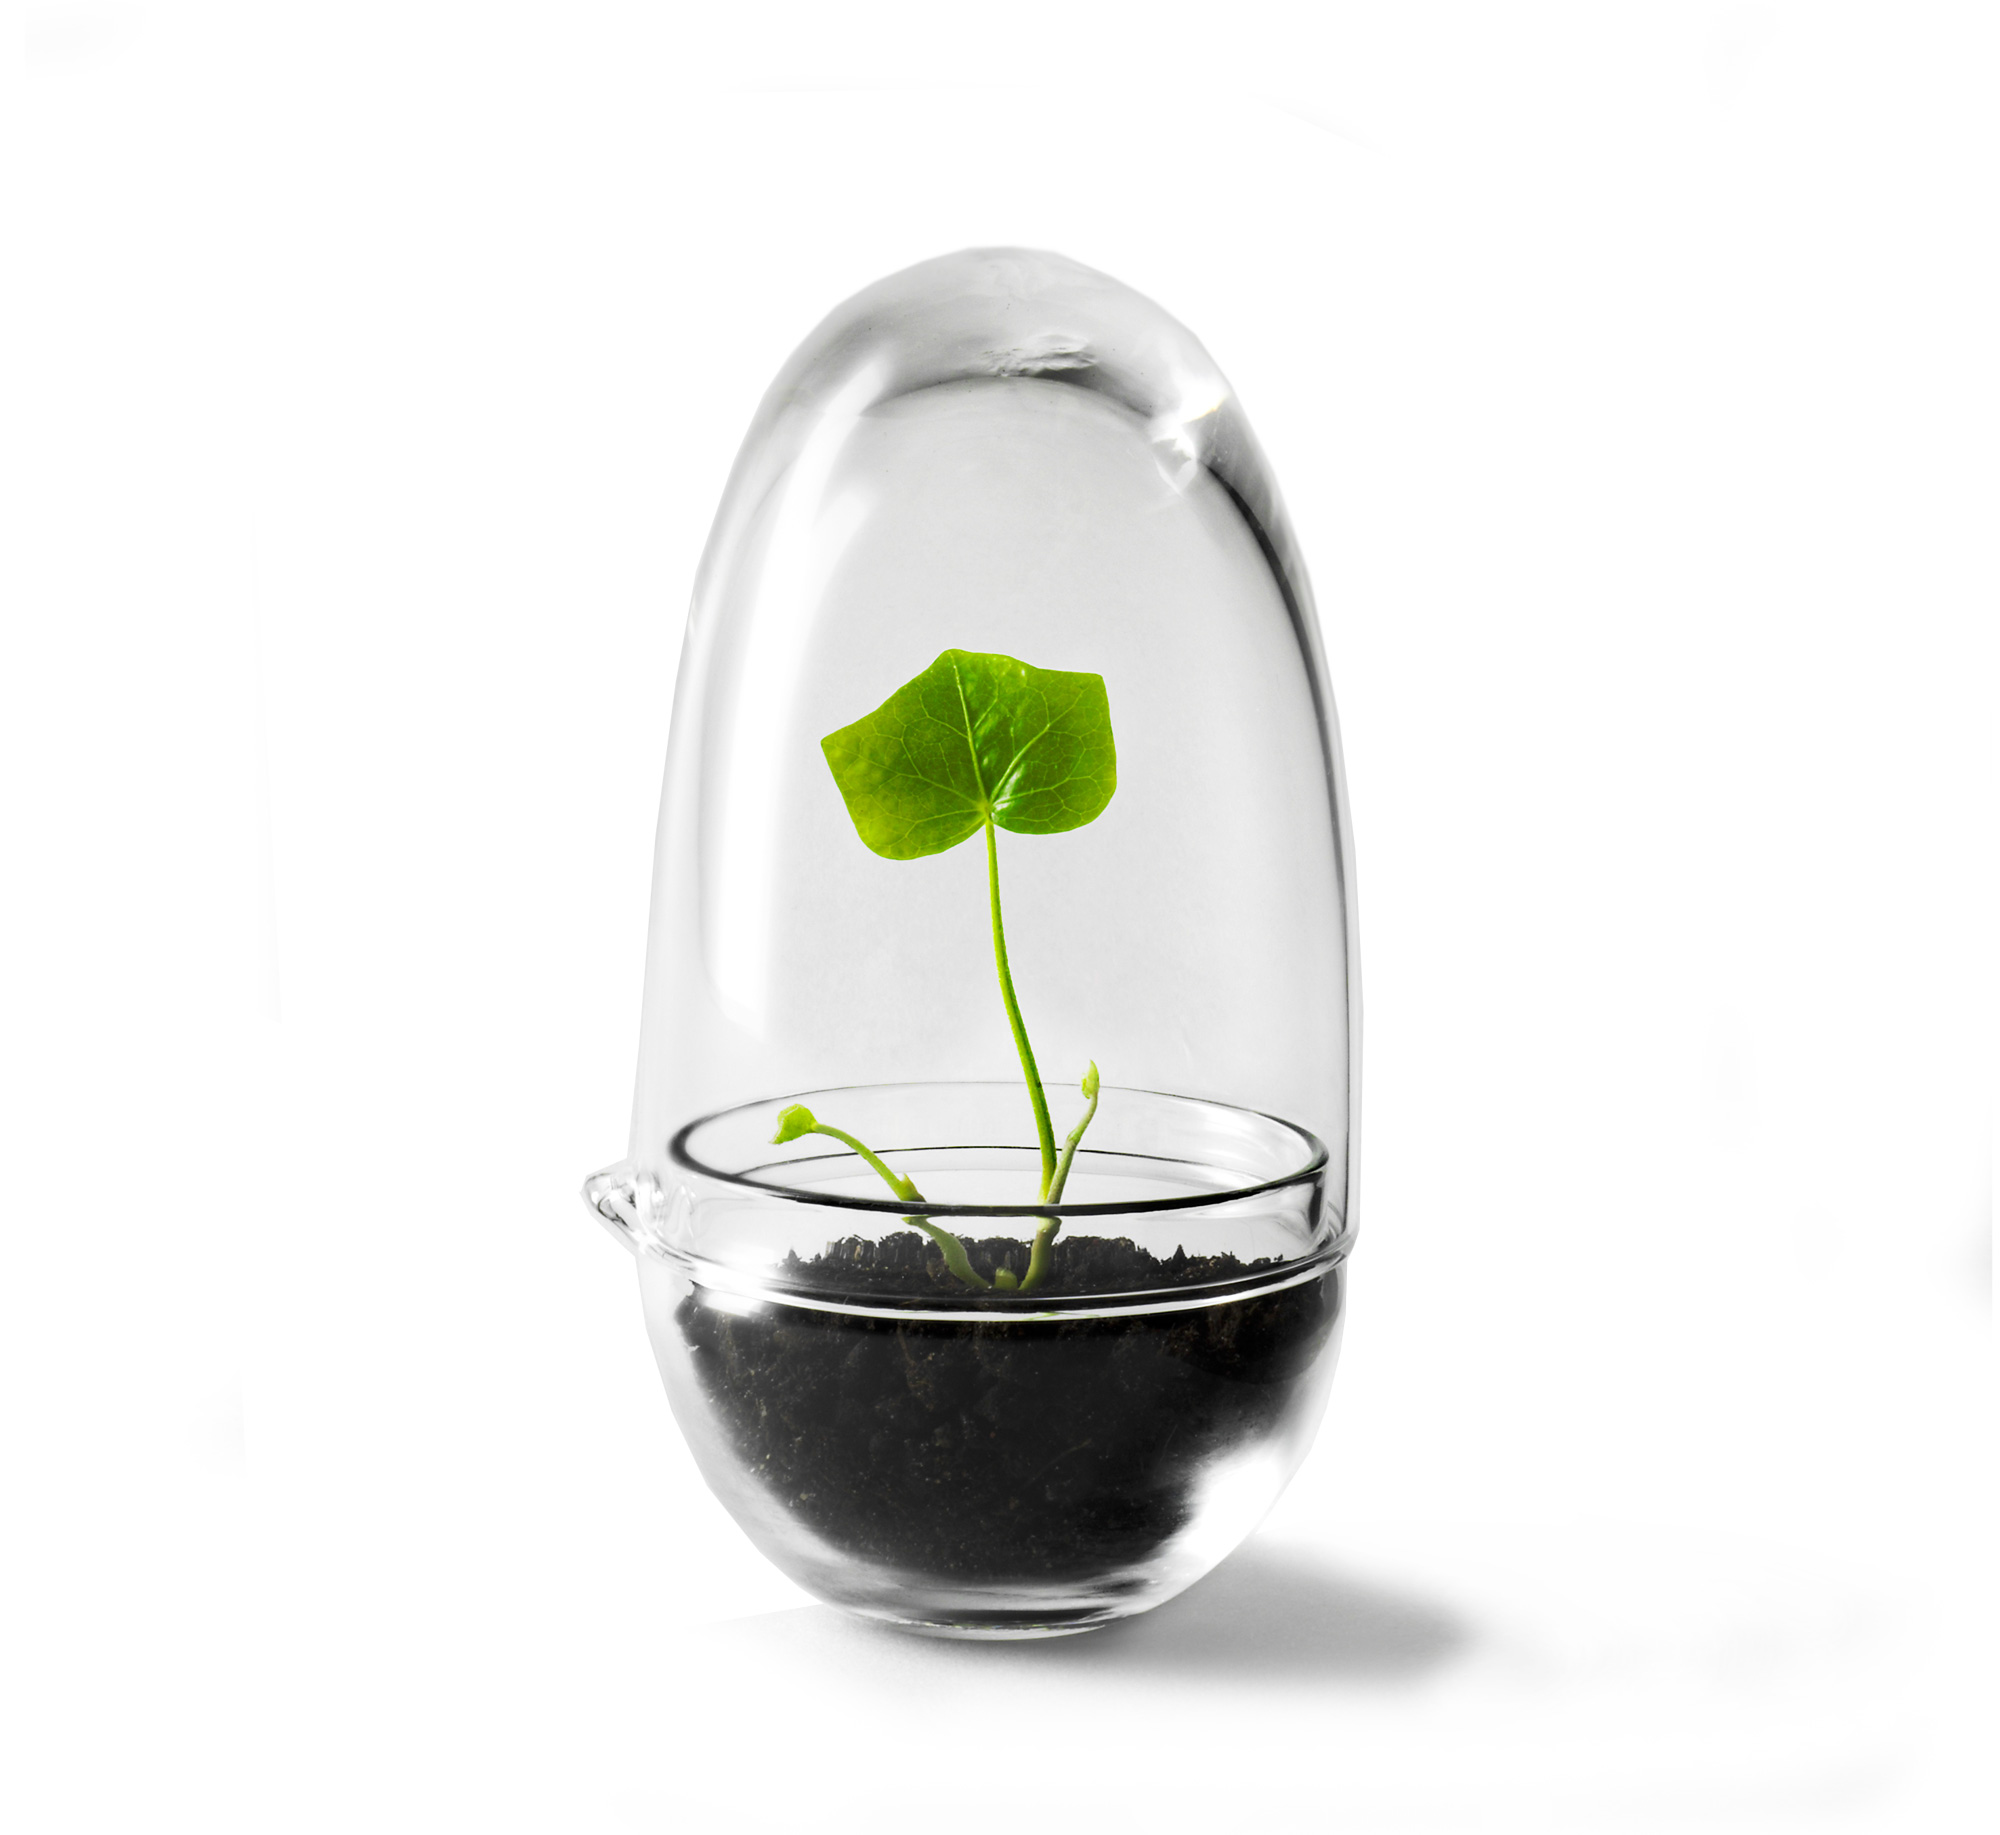 Grow Mini Invernadero Design House Stockholm | Tienda online de decoración nórdica y muebles nórdicos | Aixo